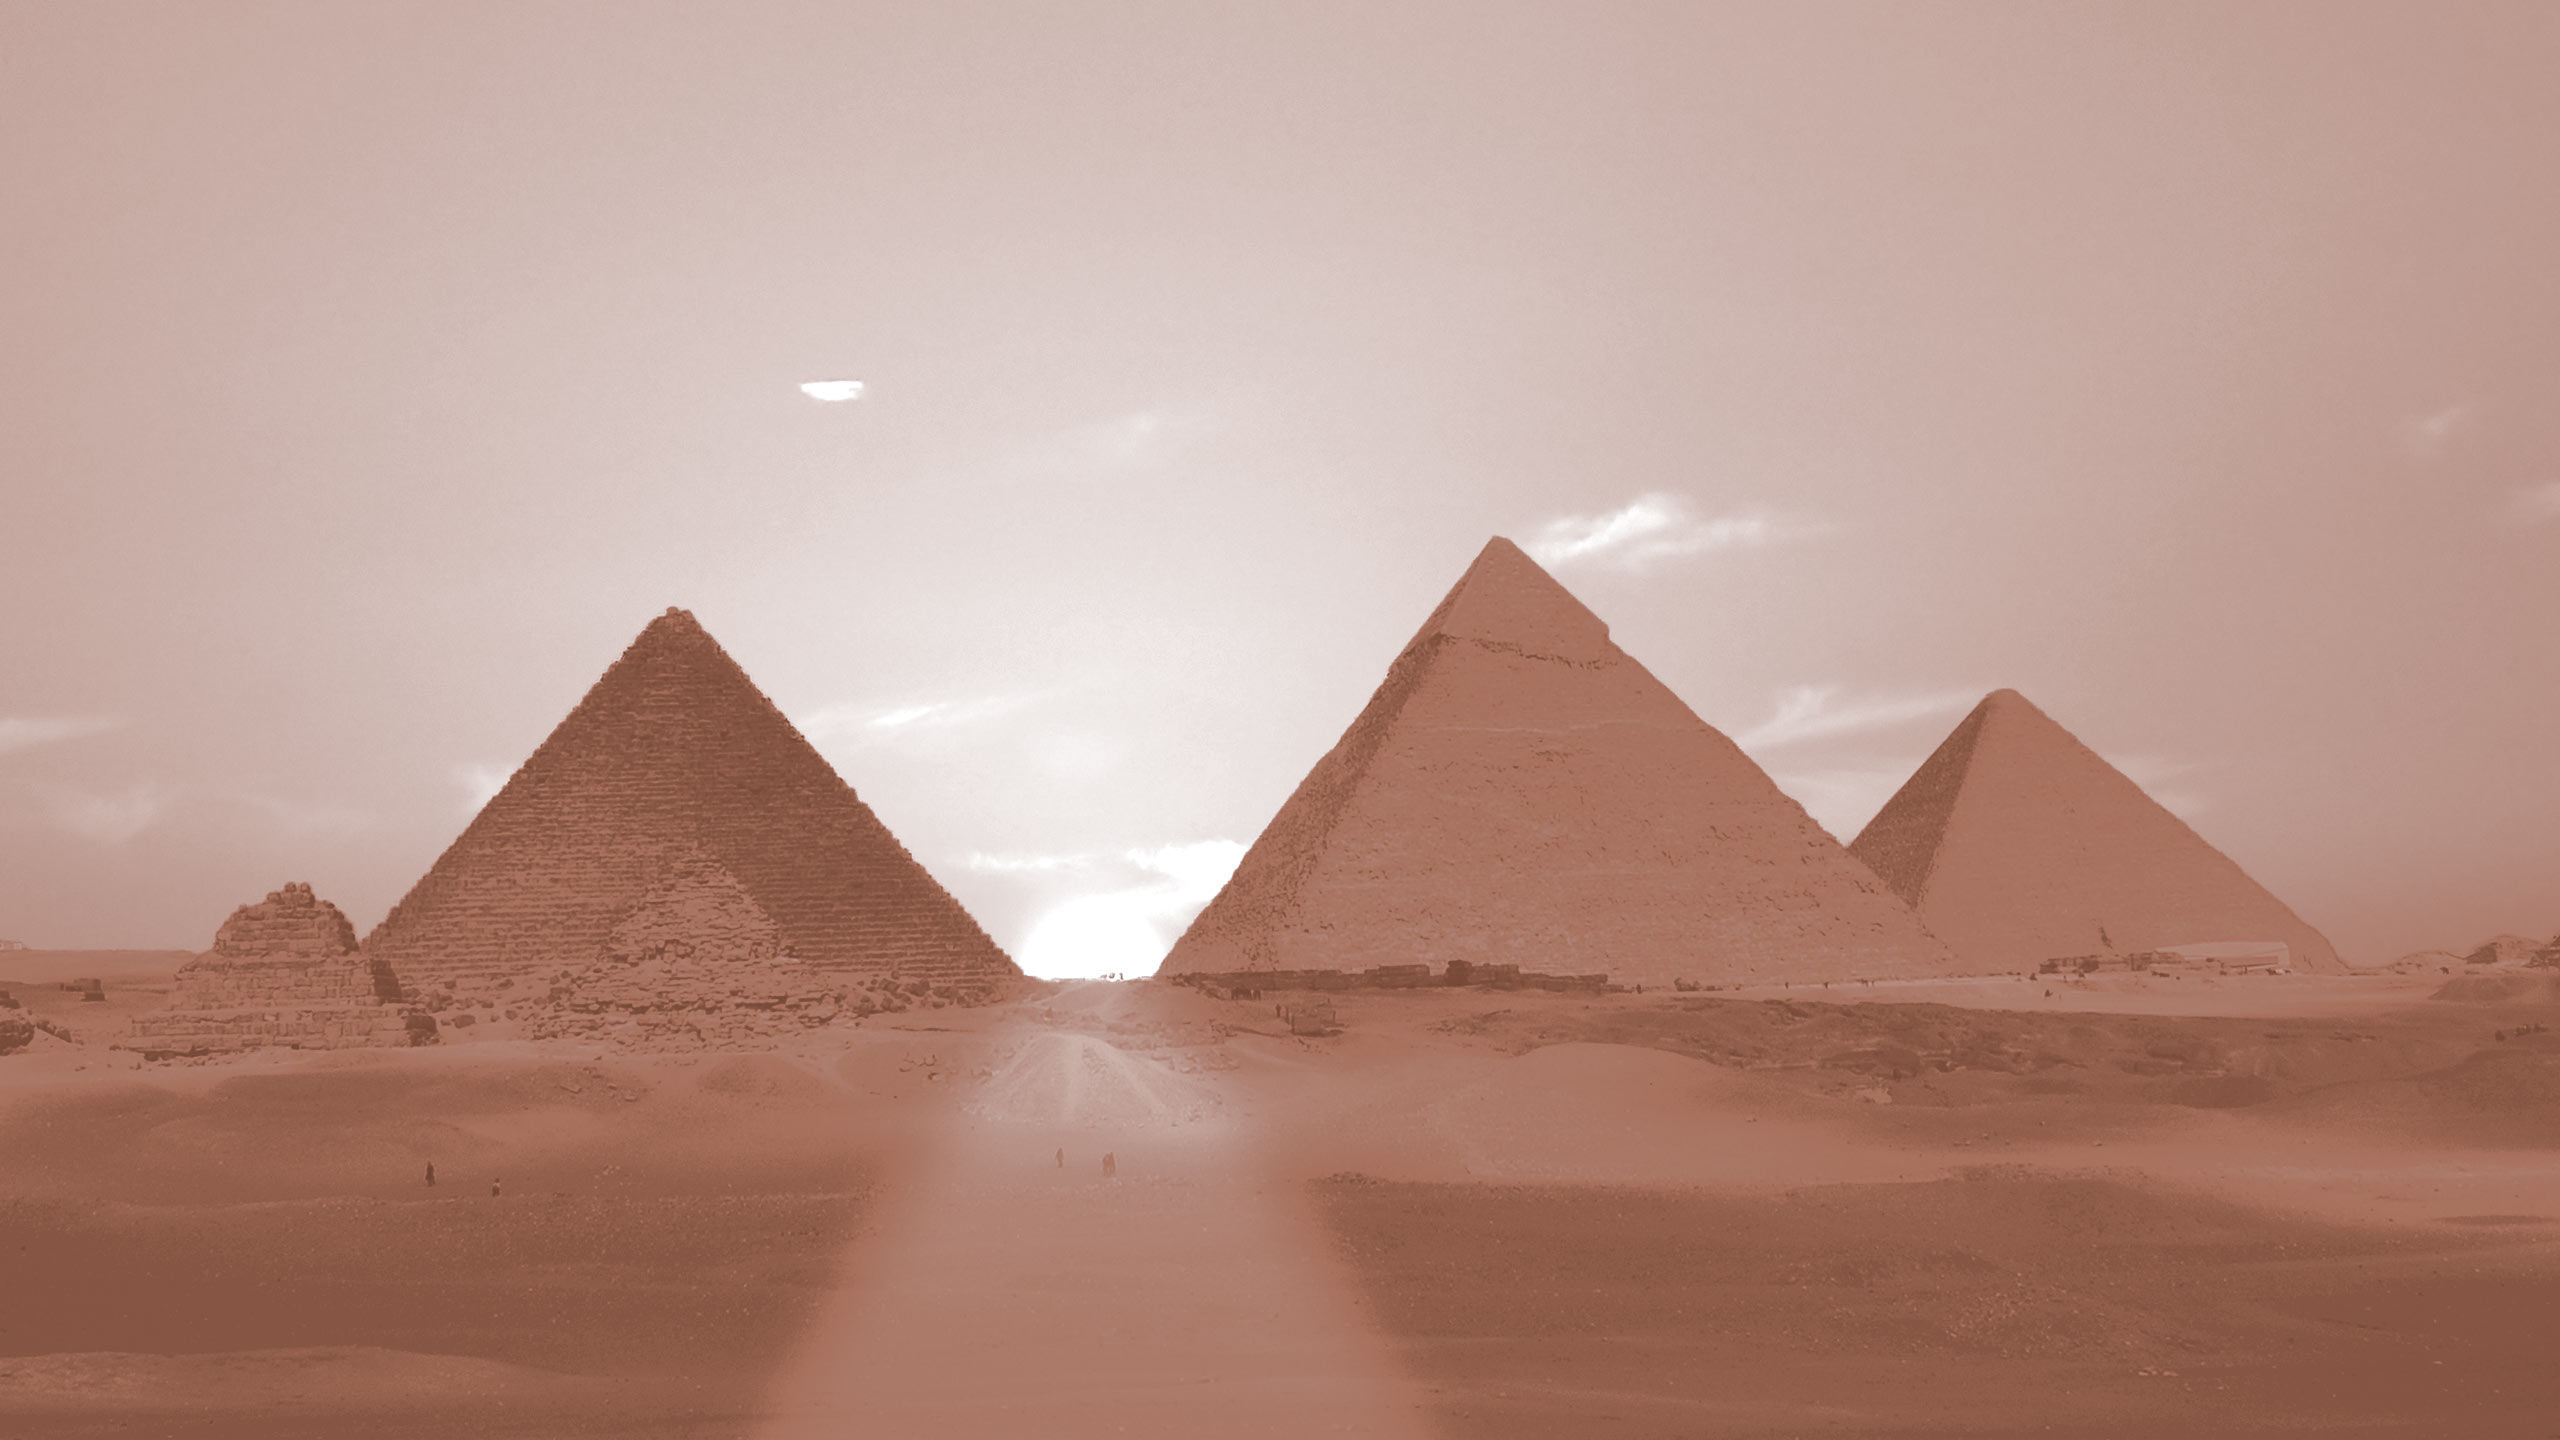 luxury hotels branding hero image duotone pyramids red sea hotels